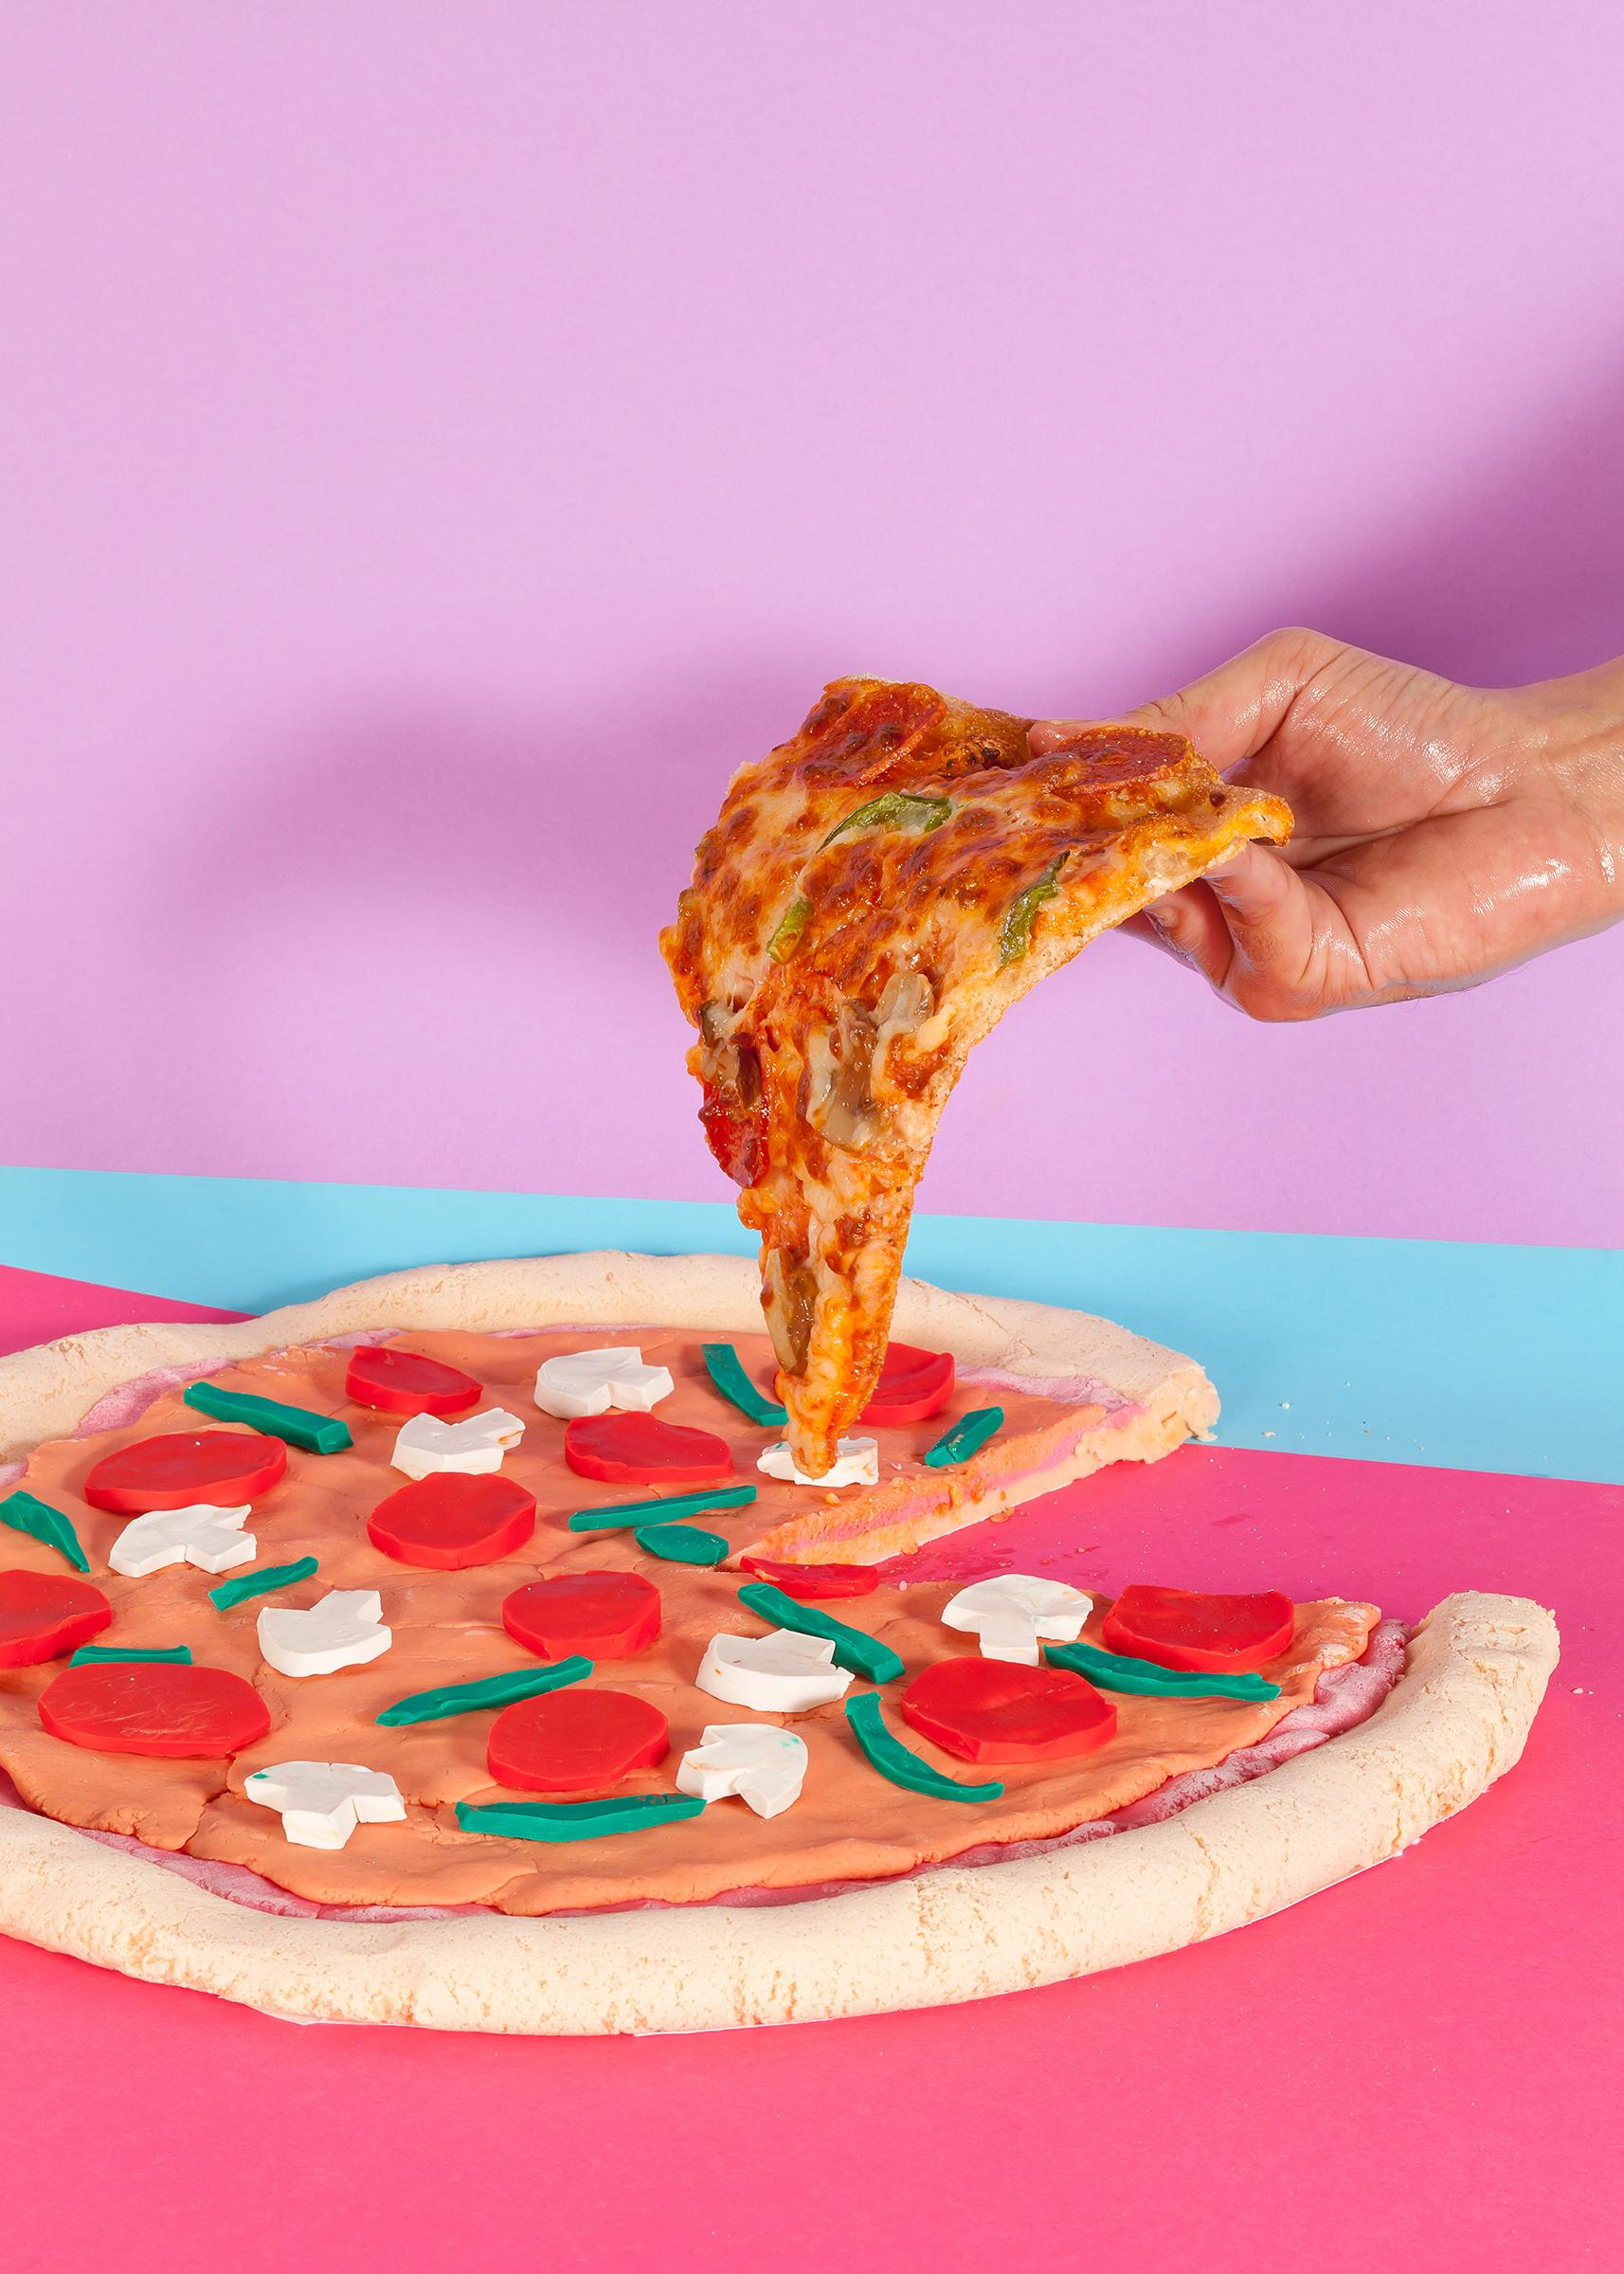 Still Life Pizza, Lively Foodie Scene, Contemporary Photography, Flashy Colors